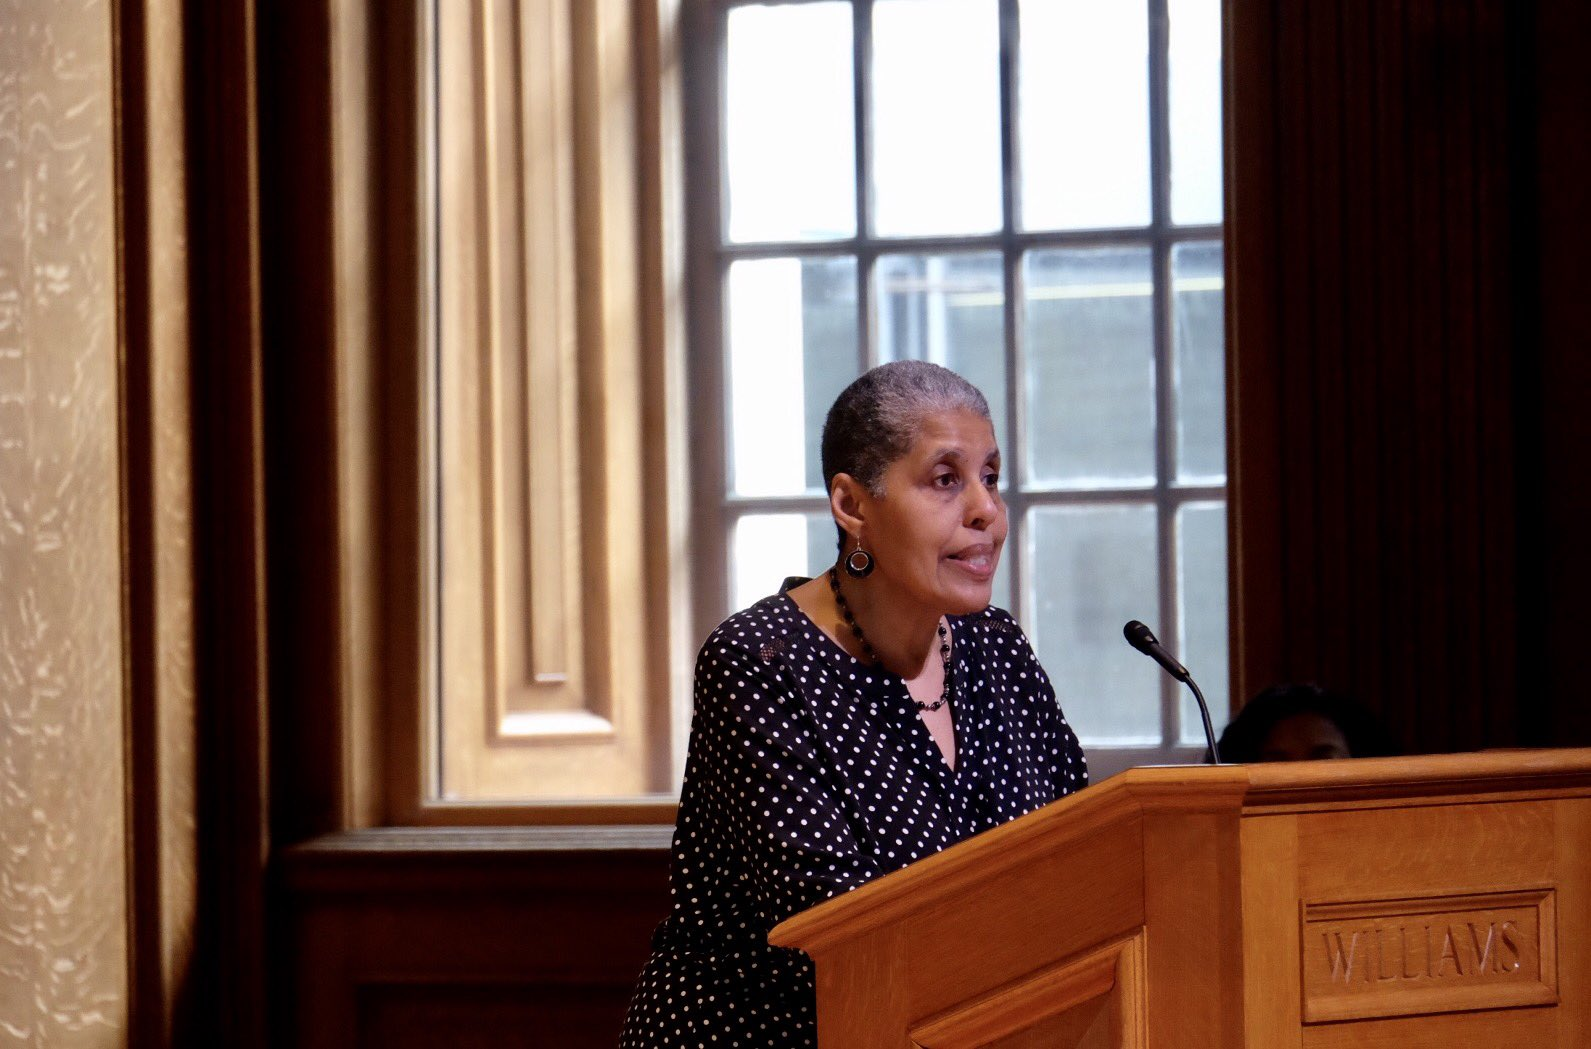 Barbara Smith speaks to students, faculty, and staff during #ClaimingWilliams @AintGonnaLet https://t.co/3i27ty6A9w